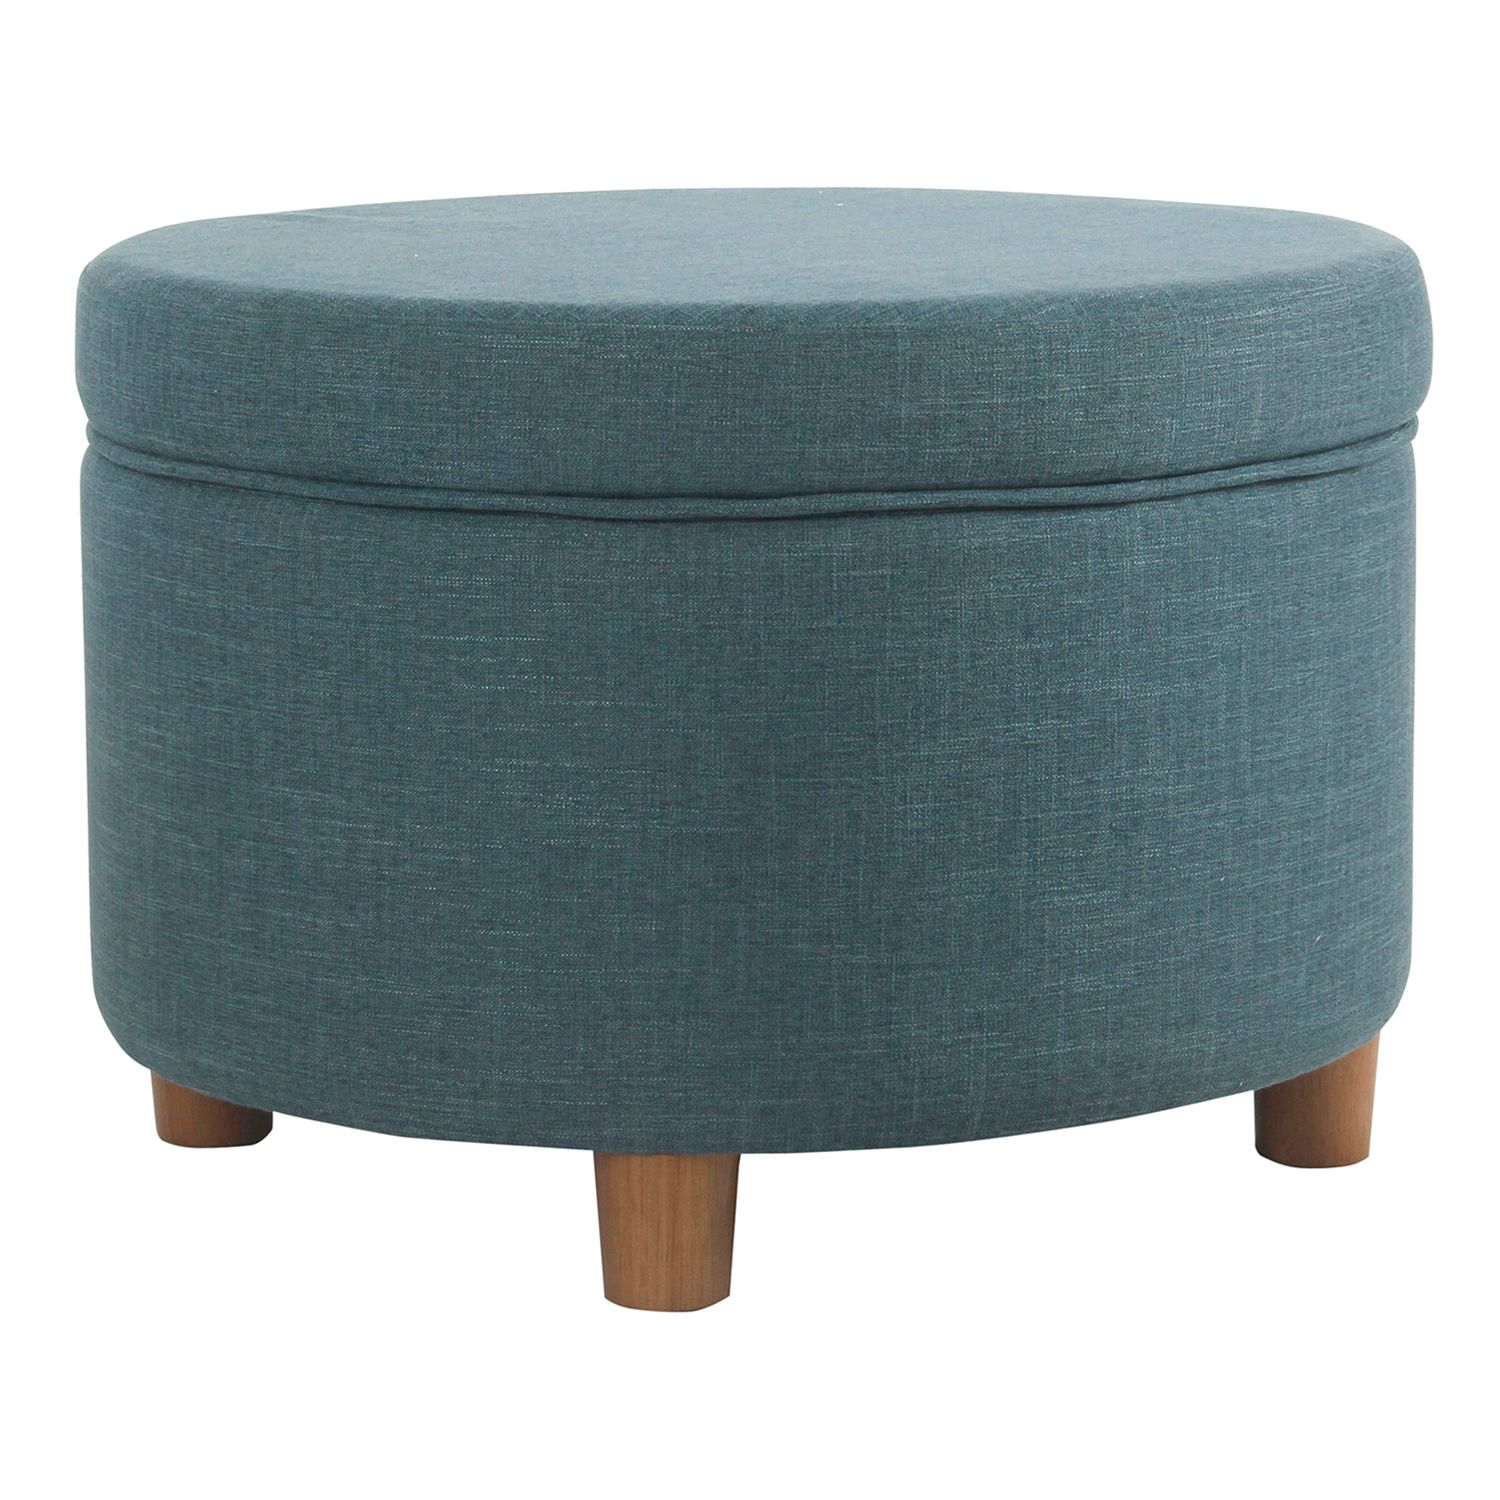 Ordinaire HomePop Round Storage Ottoman